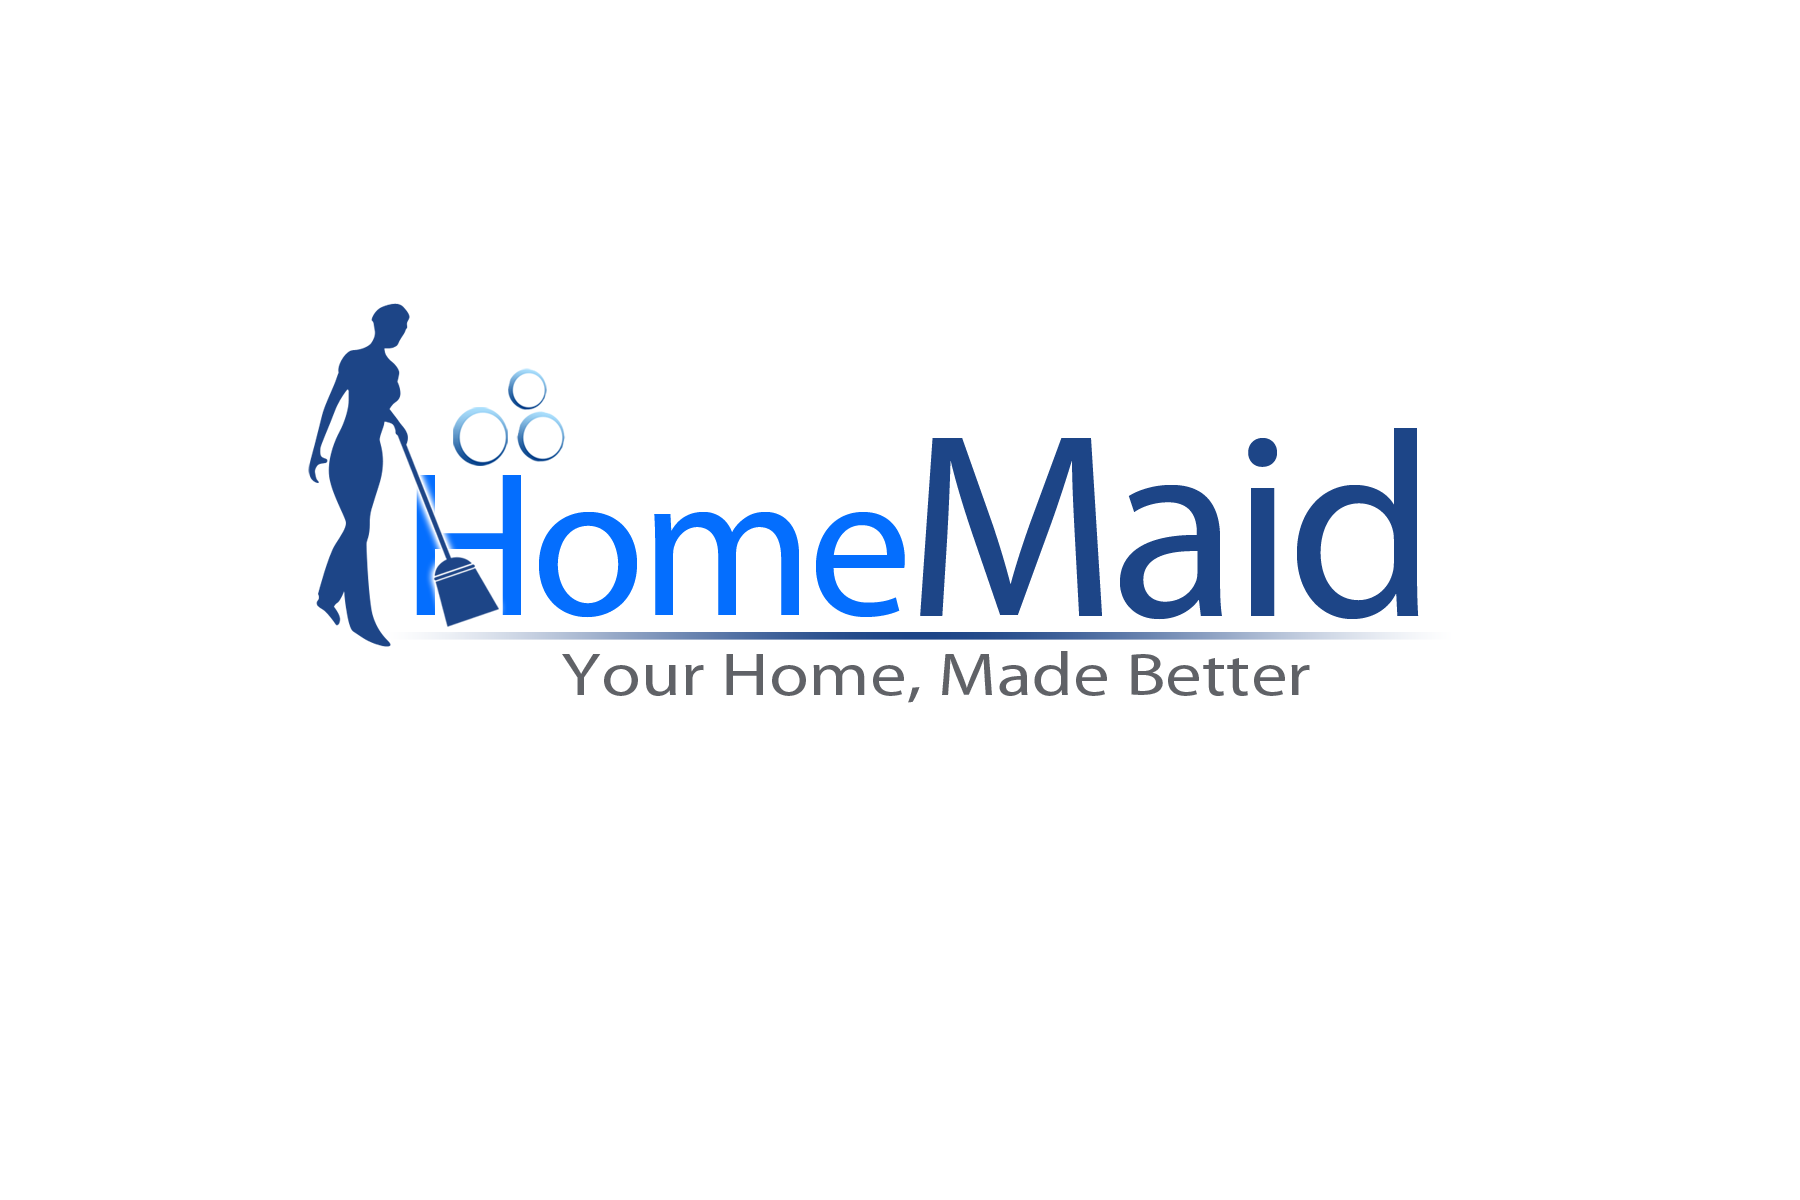 Logo Design by golden-hand - Entry No. 58 in the Logo Design Contest Unique Logo Design Wanted for HomeMaid.